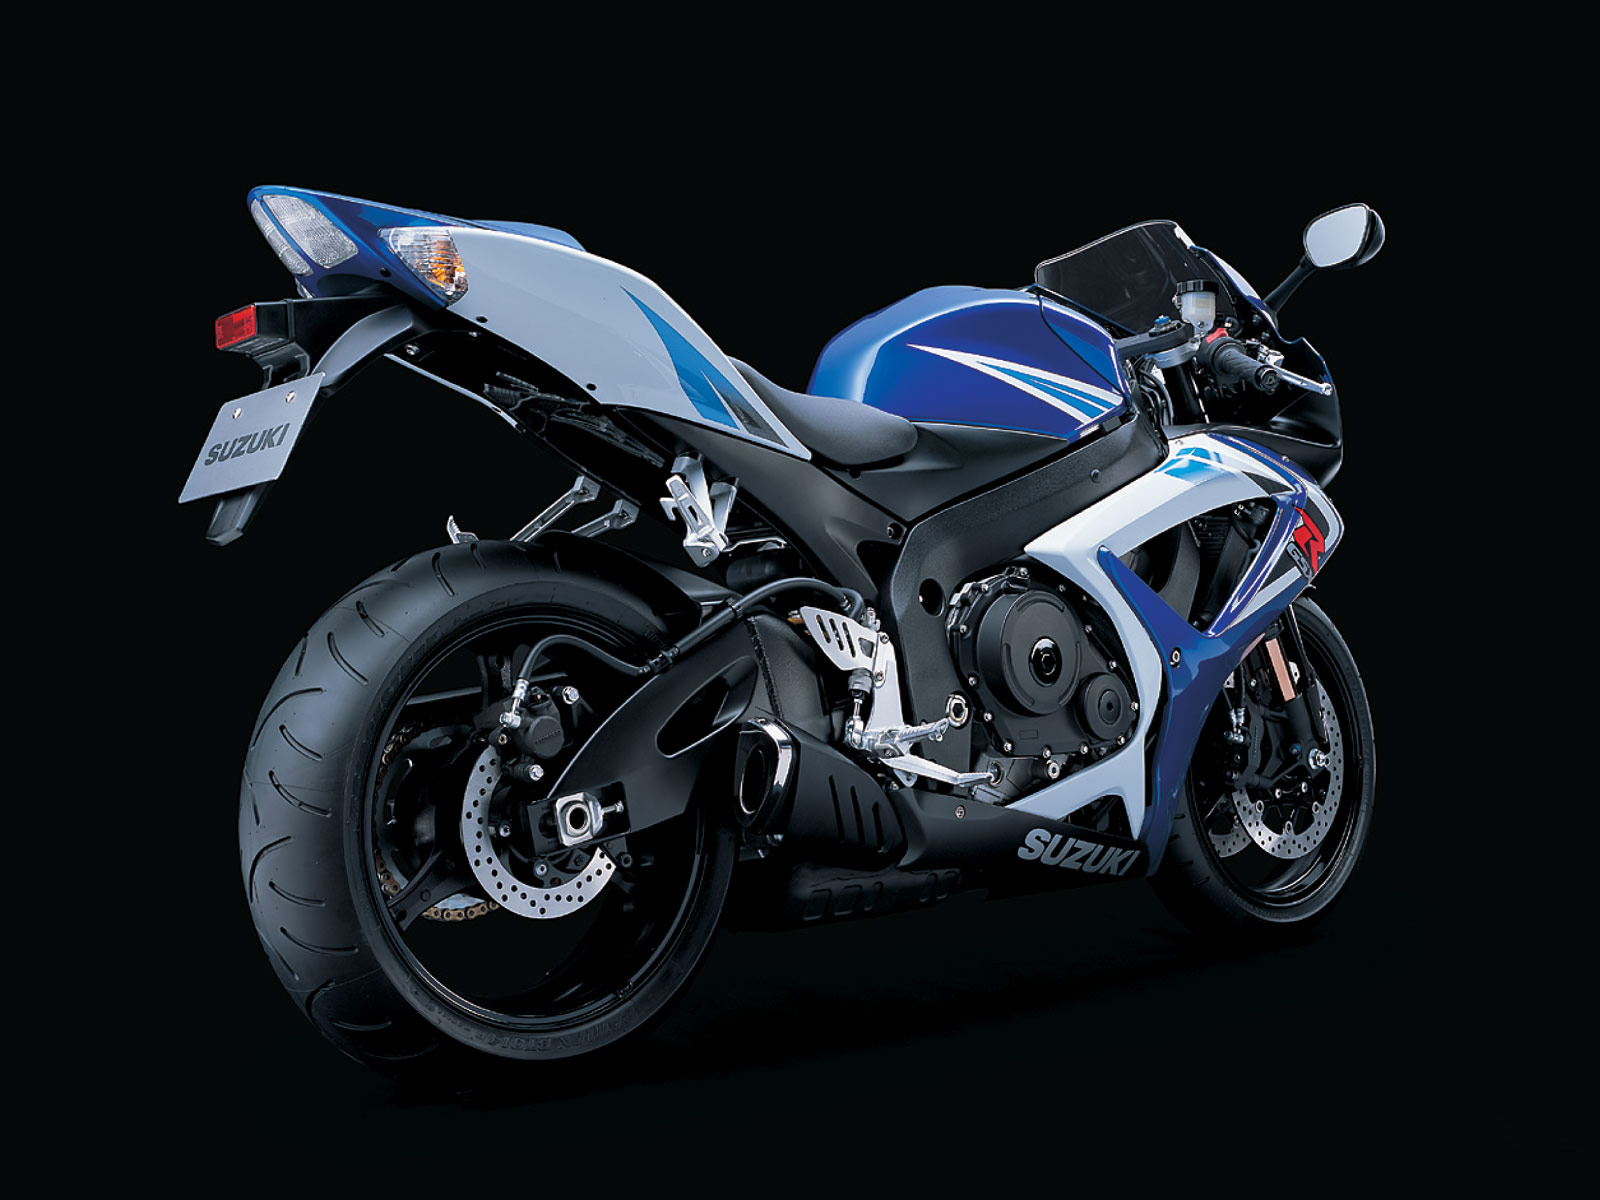 2006 Suzuki Gsx R 750 Motorcycle Accident Lawyers Info